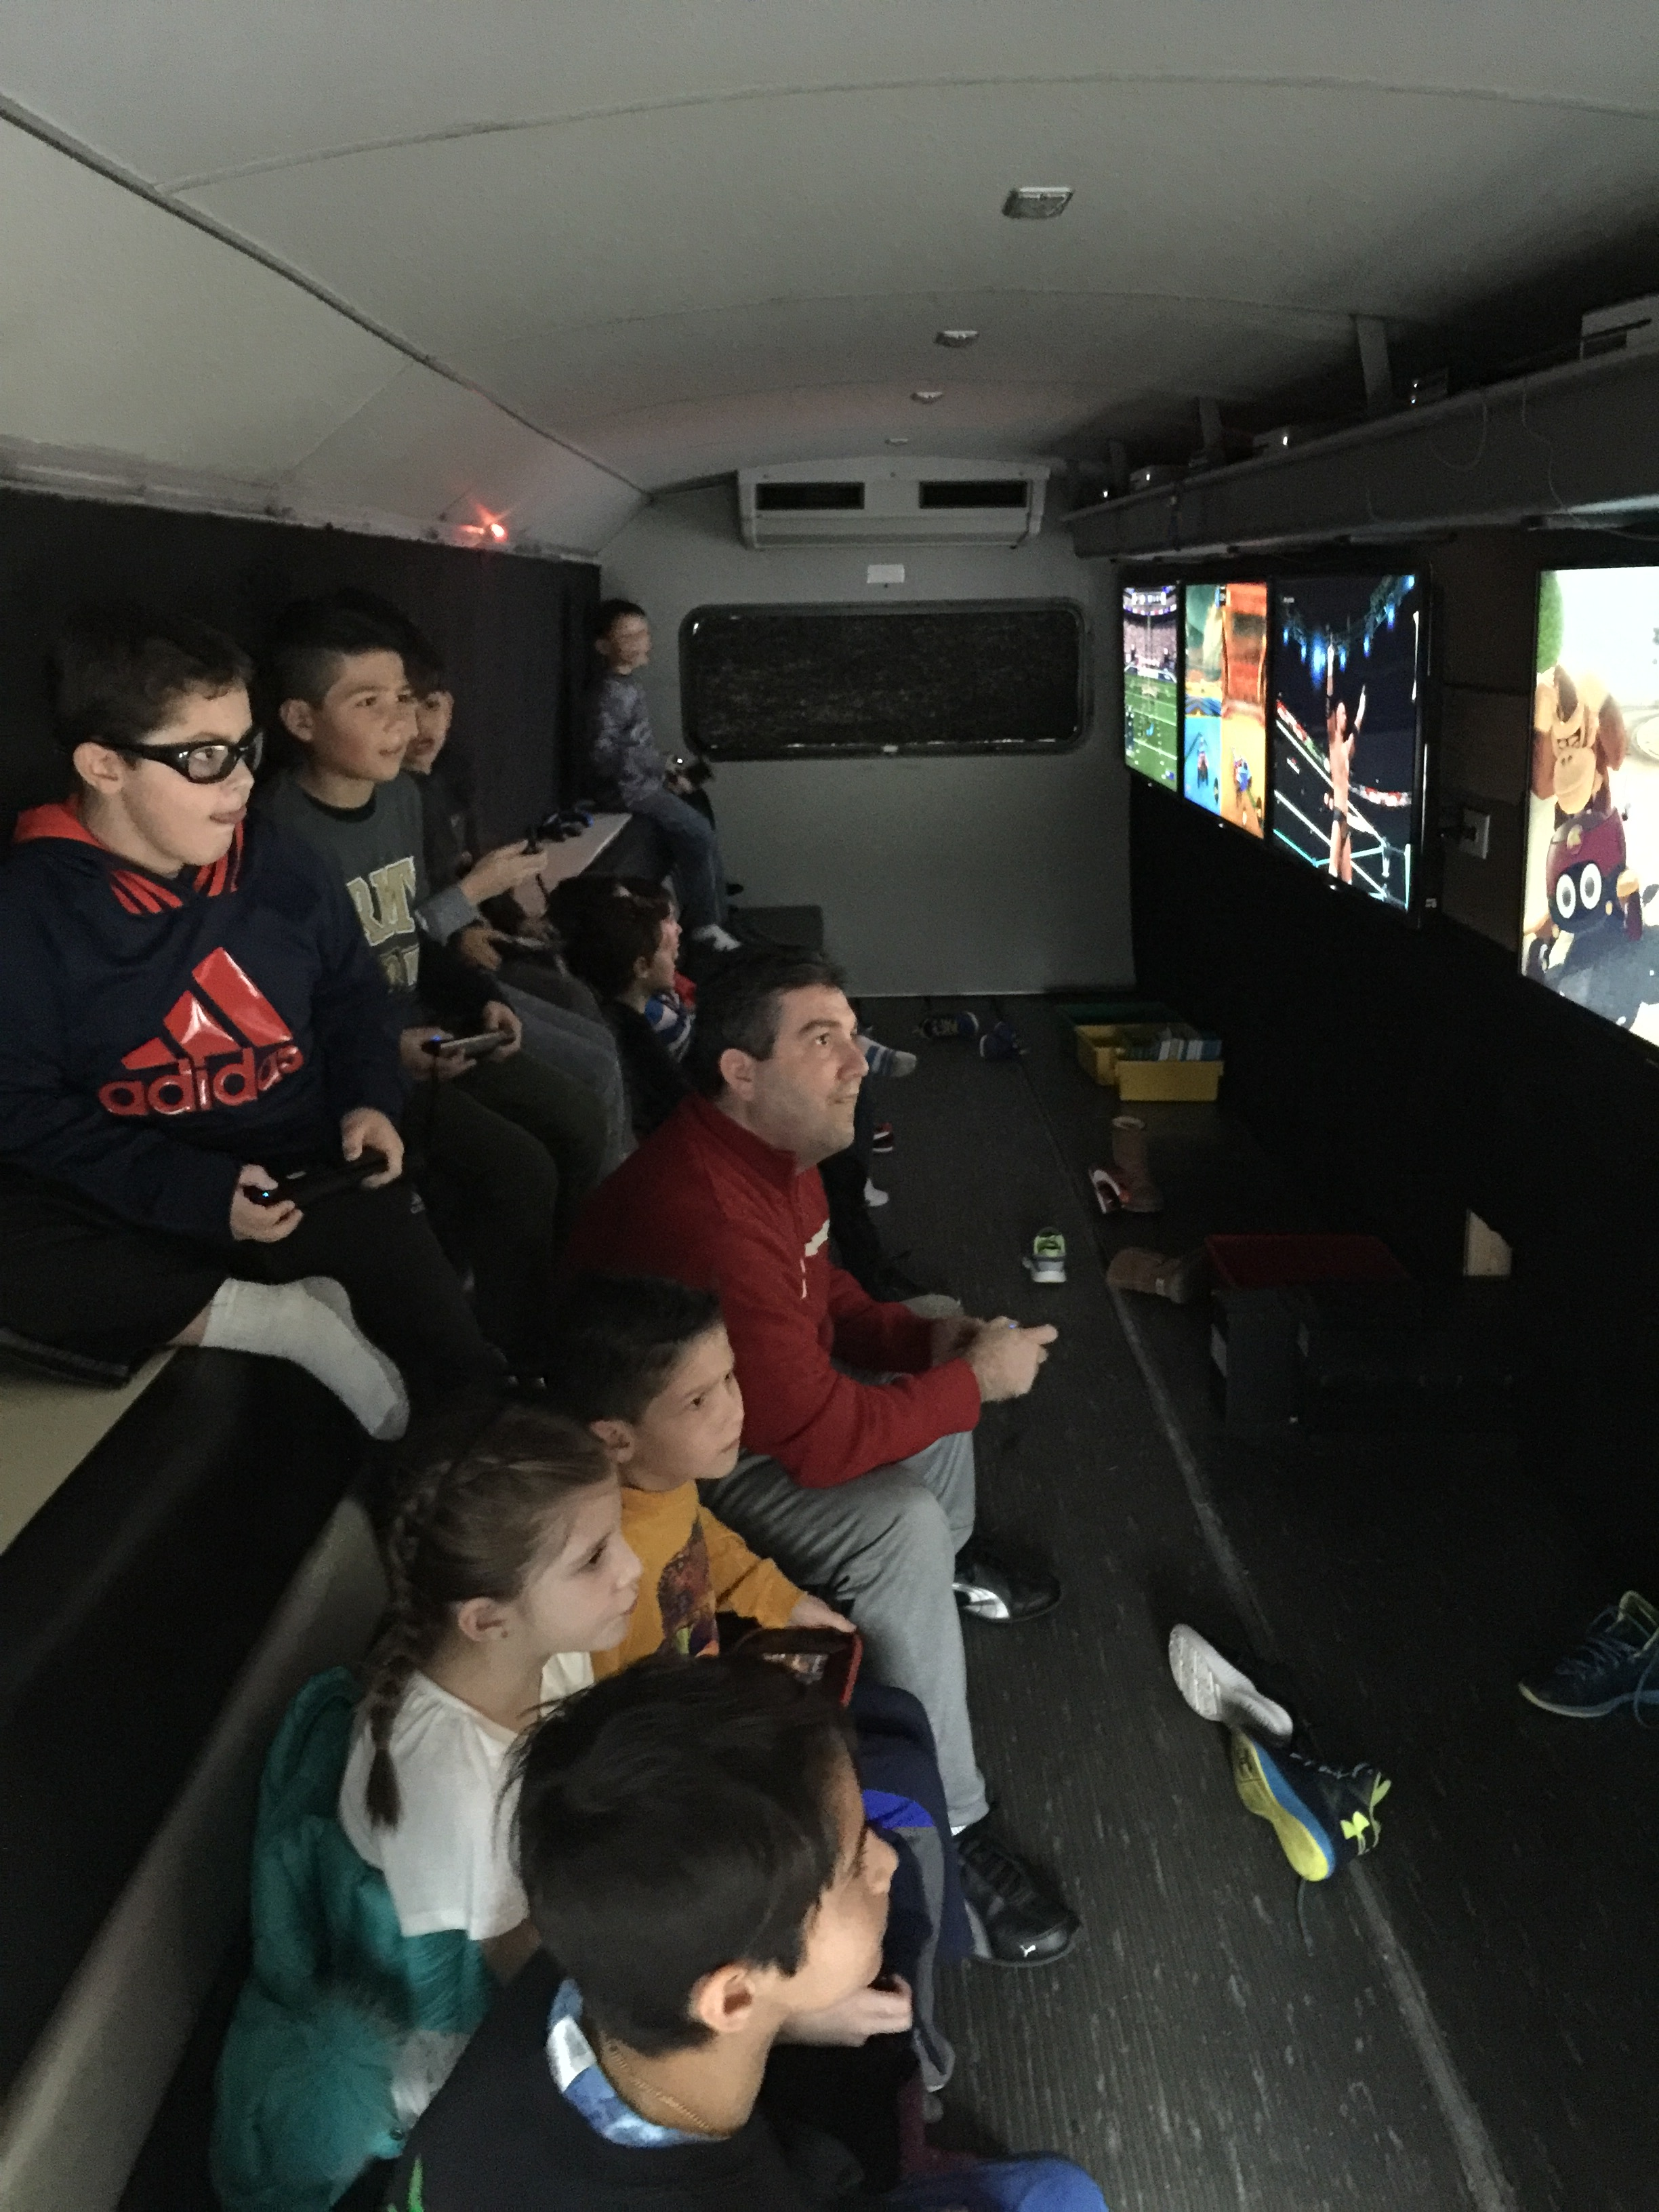 Guests inside Game Bus